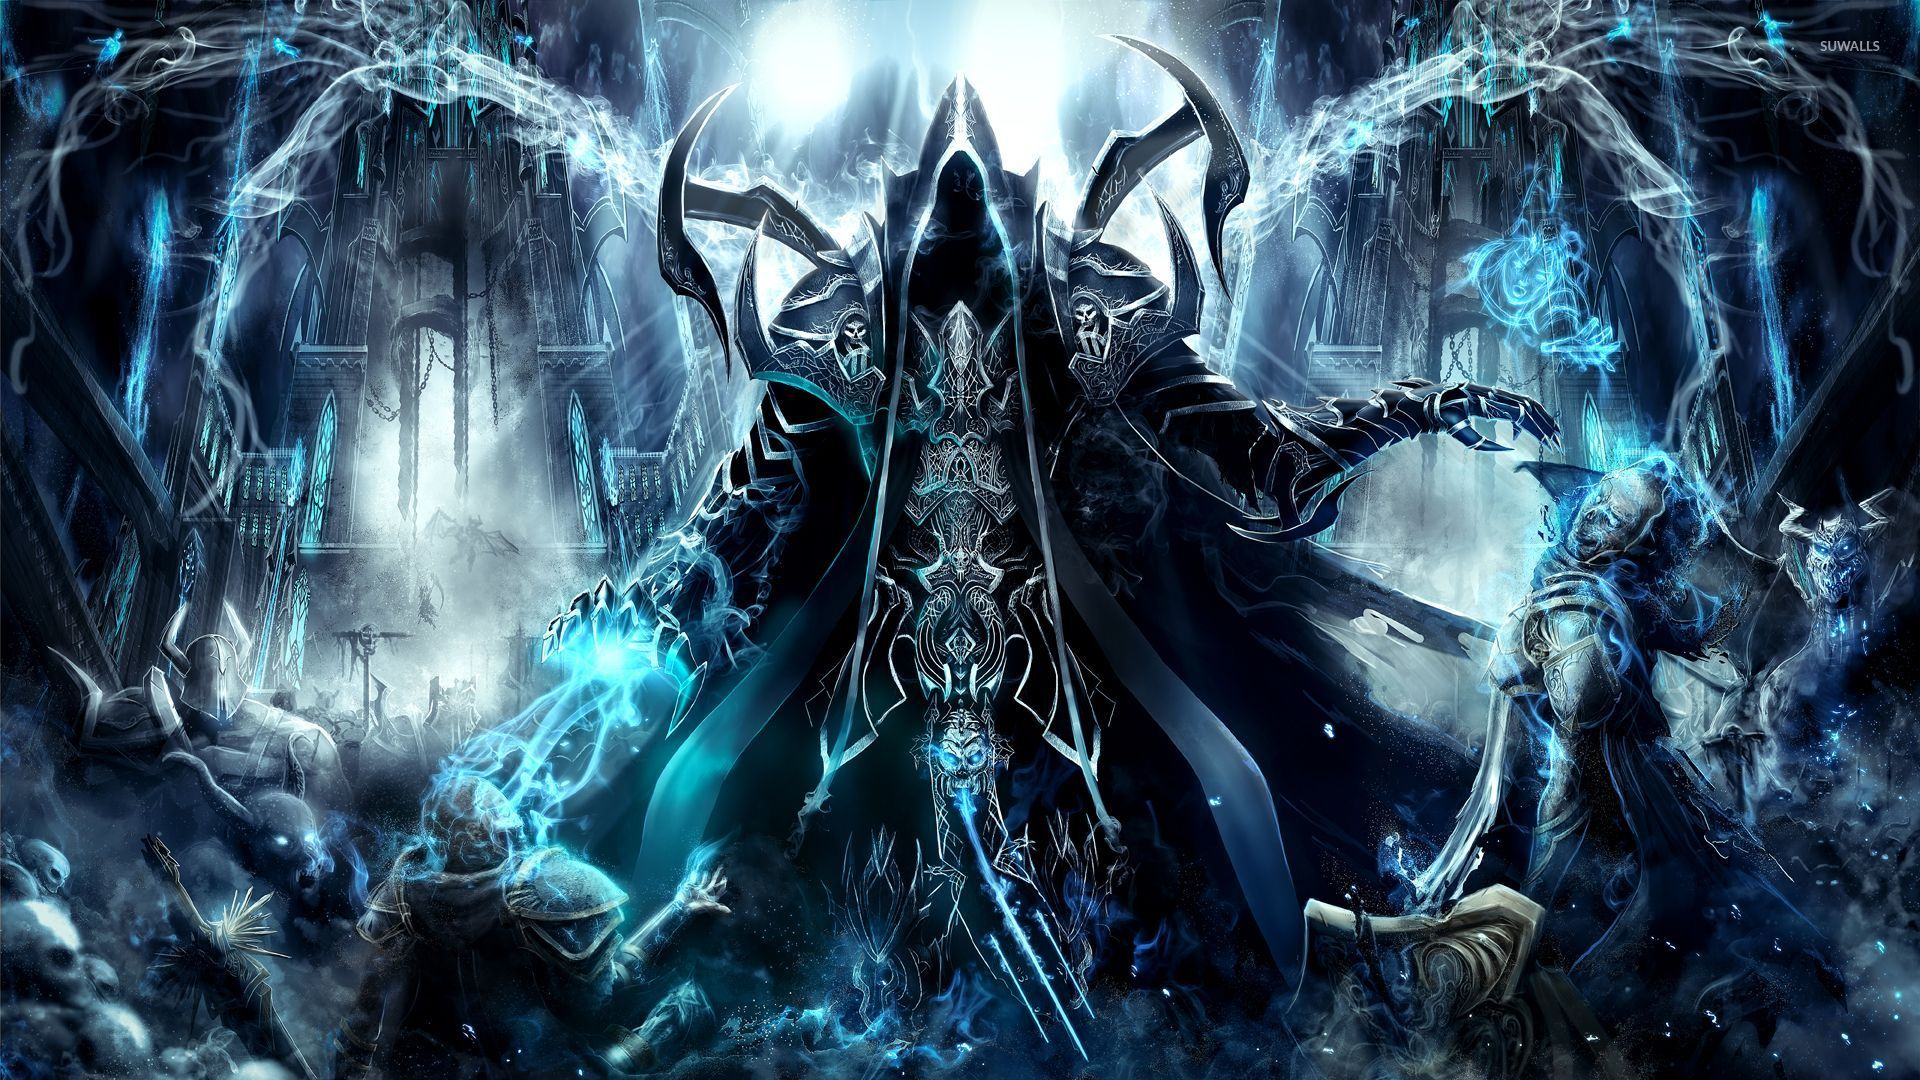 Wizard in Diablo III: Reaper of Souls wallpaper - Game ...